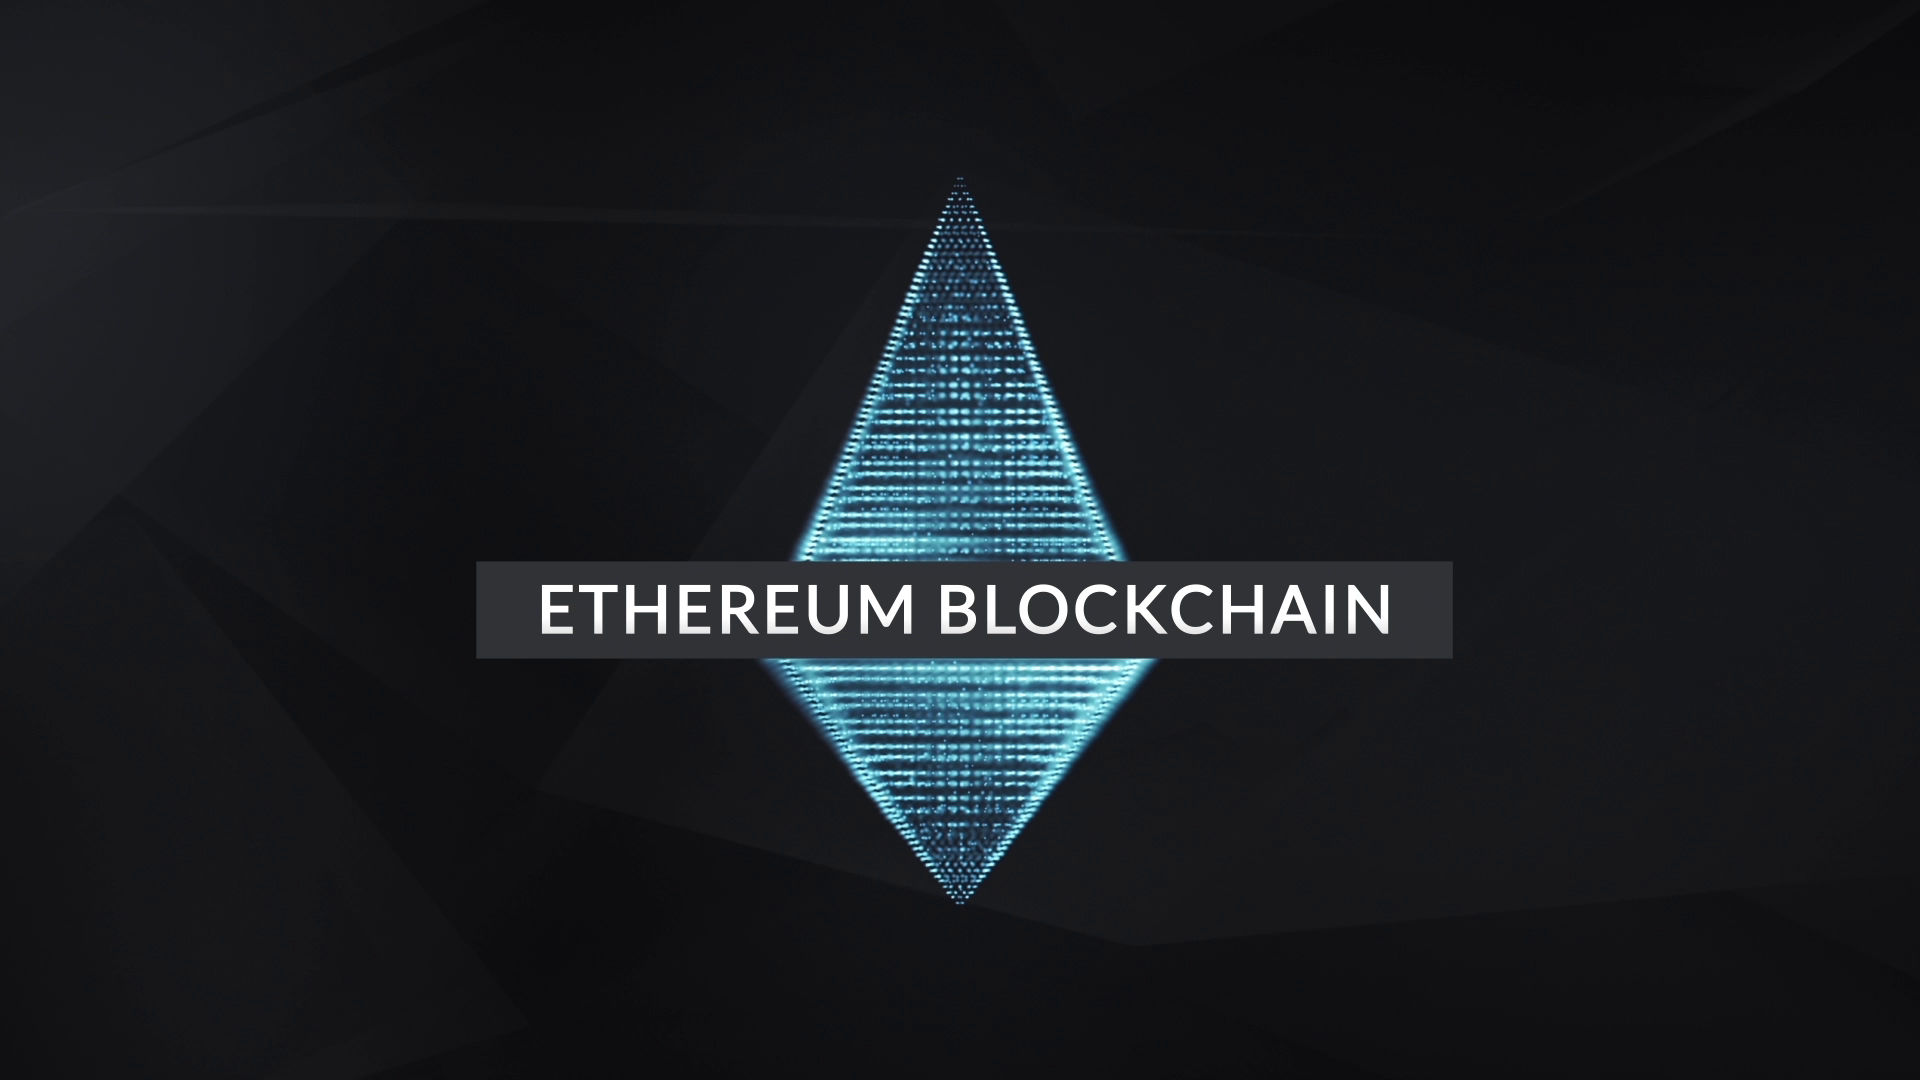 Ethereum Motion Graphics